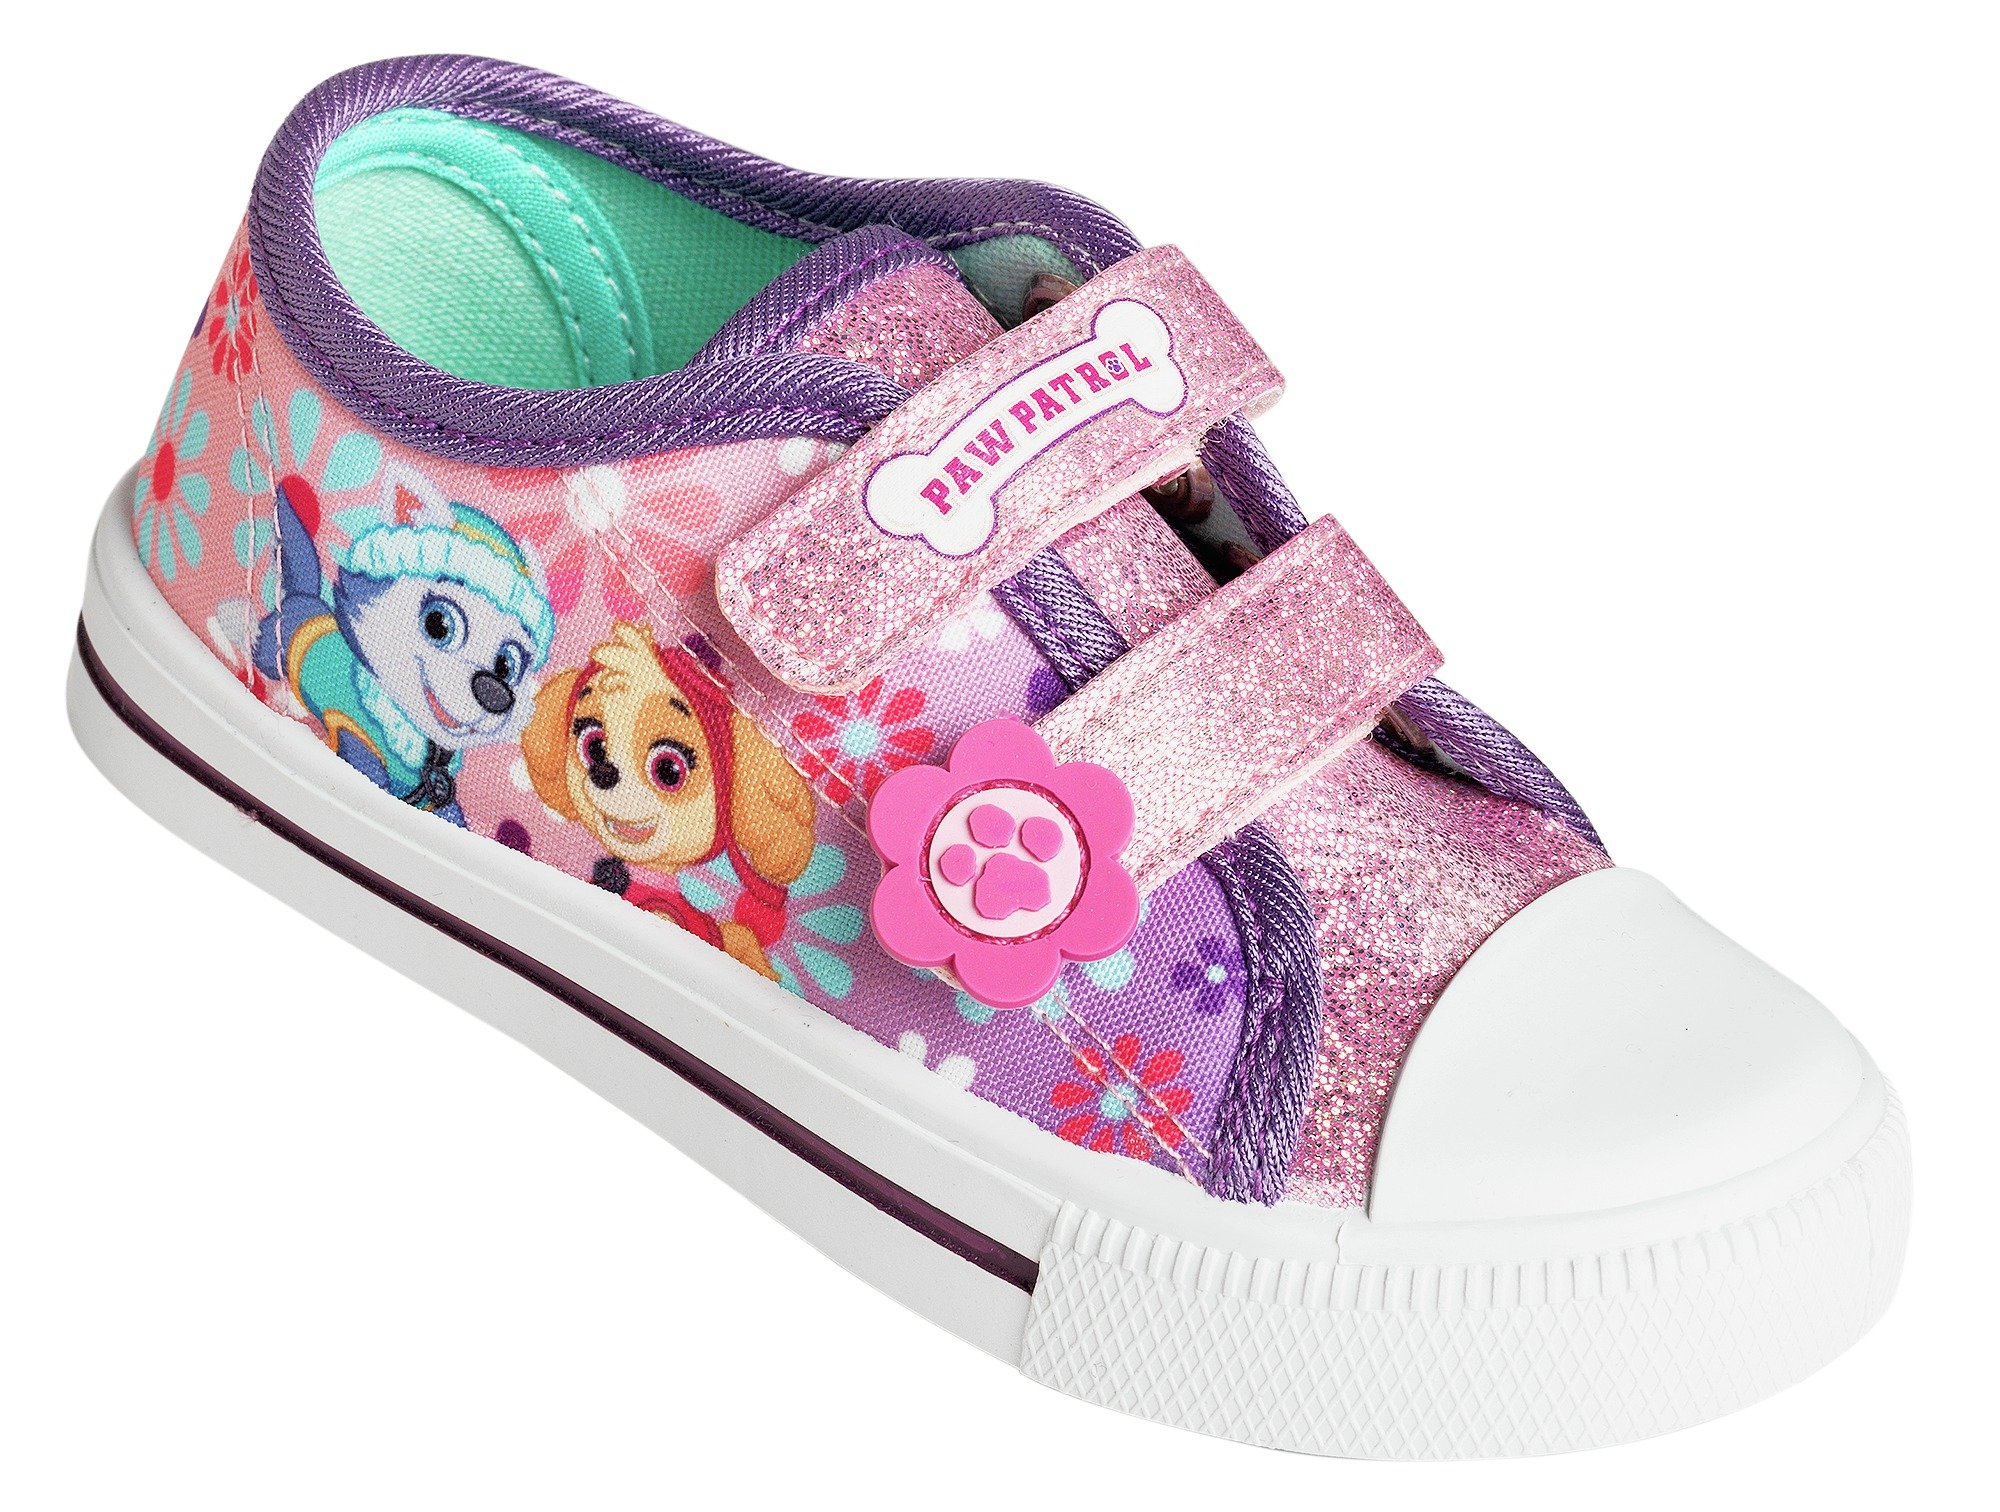 Image of PAW Patrol Pink Canvas Trainers - Size 7